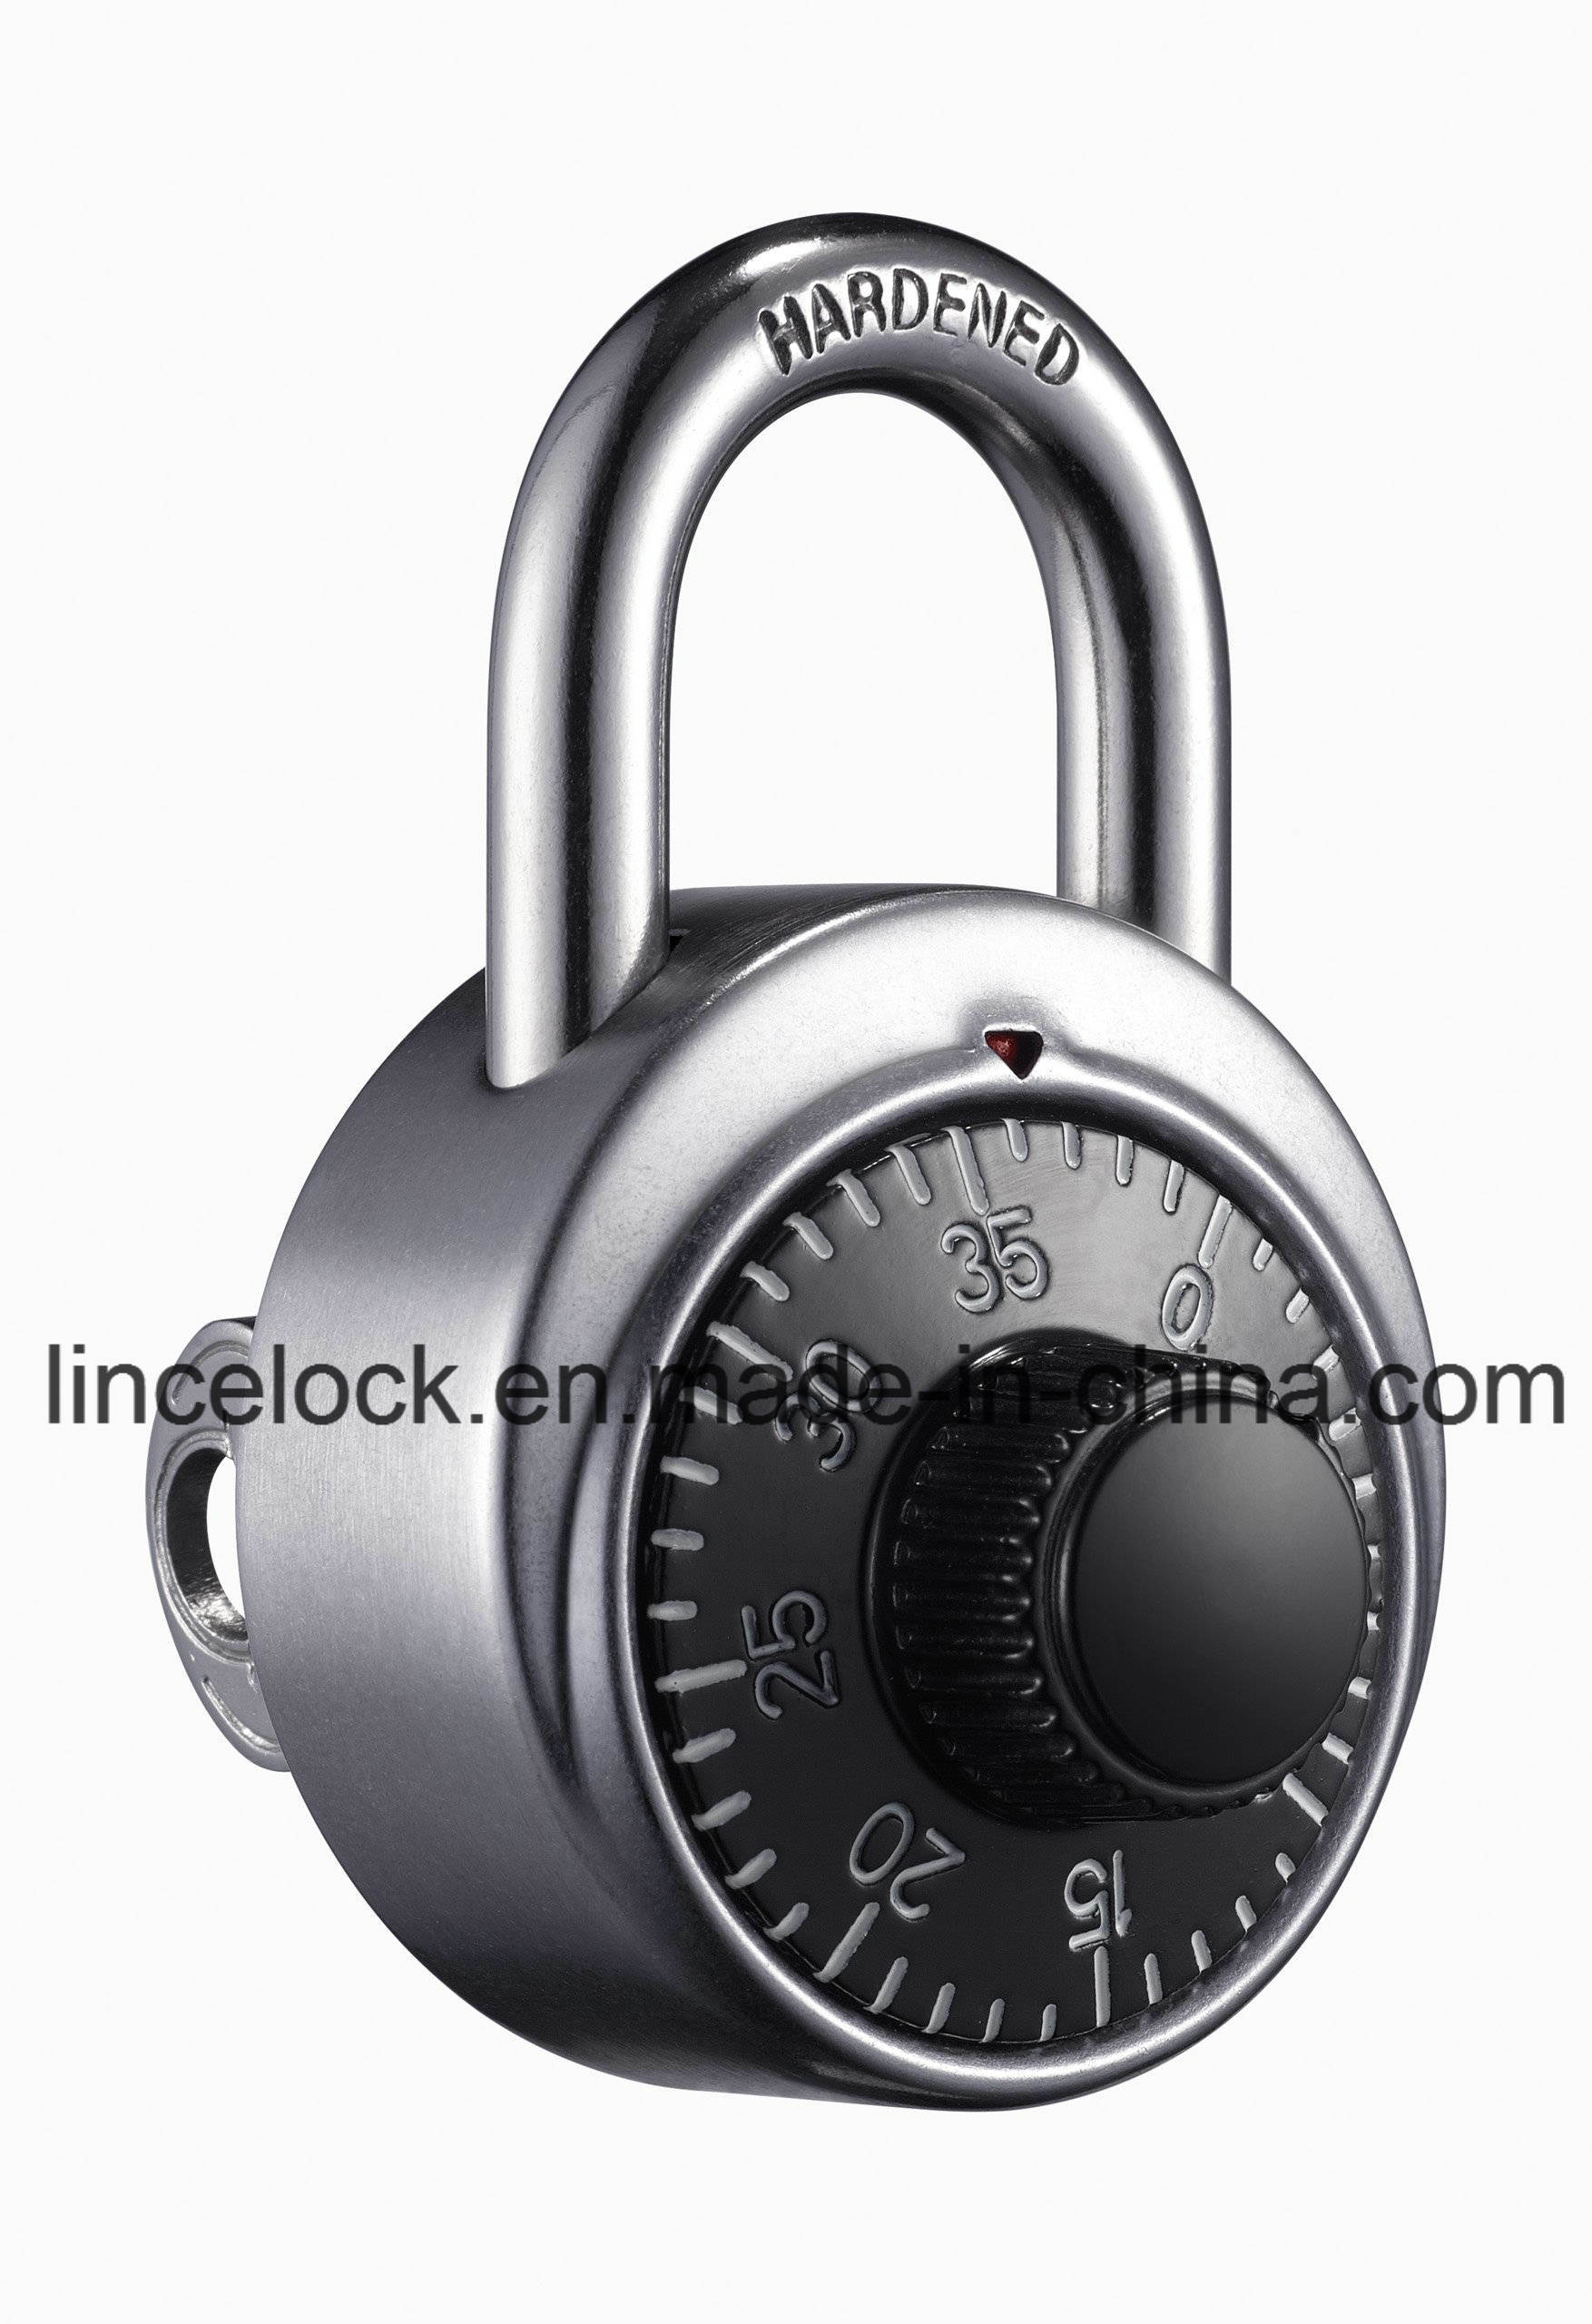 Combination Dial Padlock / Aluminum Alloy Code Lock (504) pictures & photos